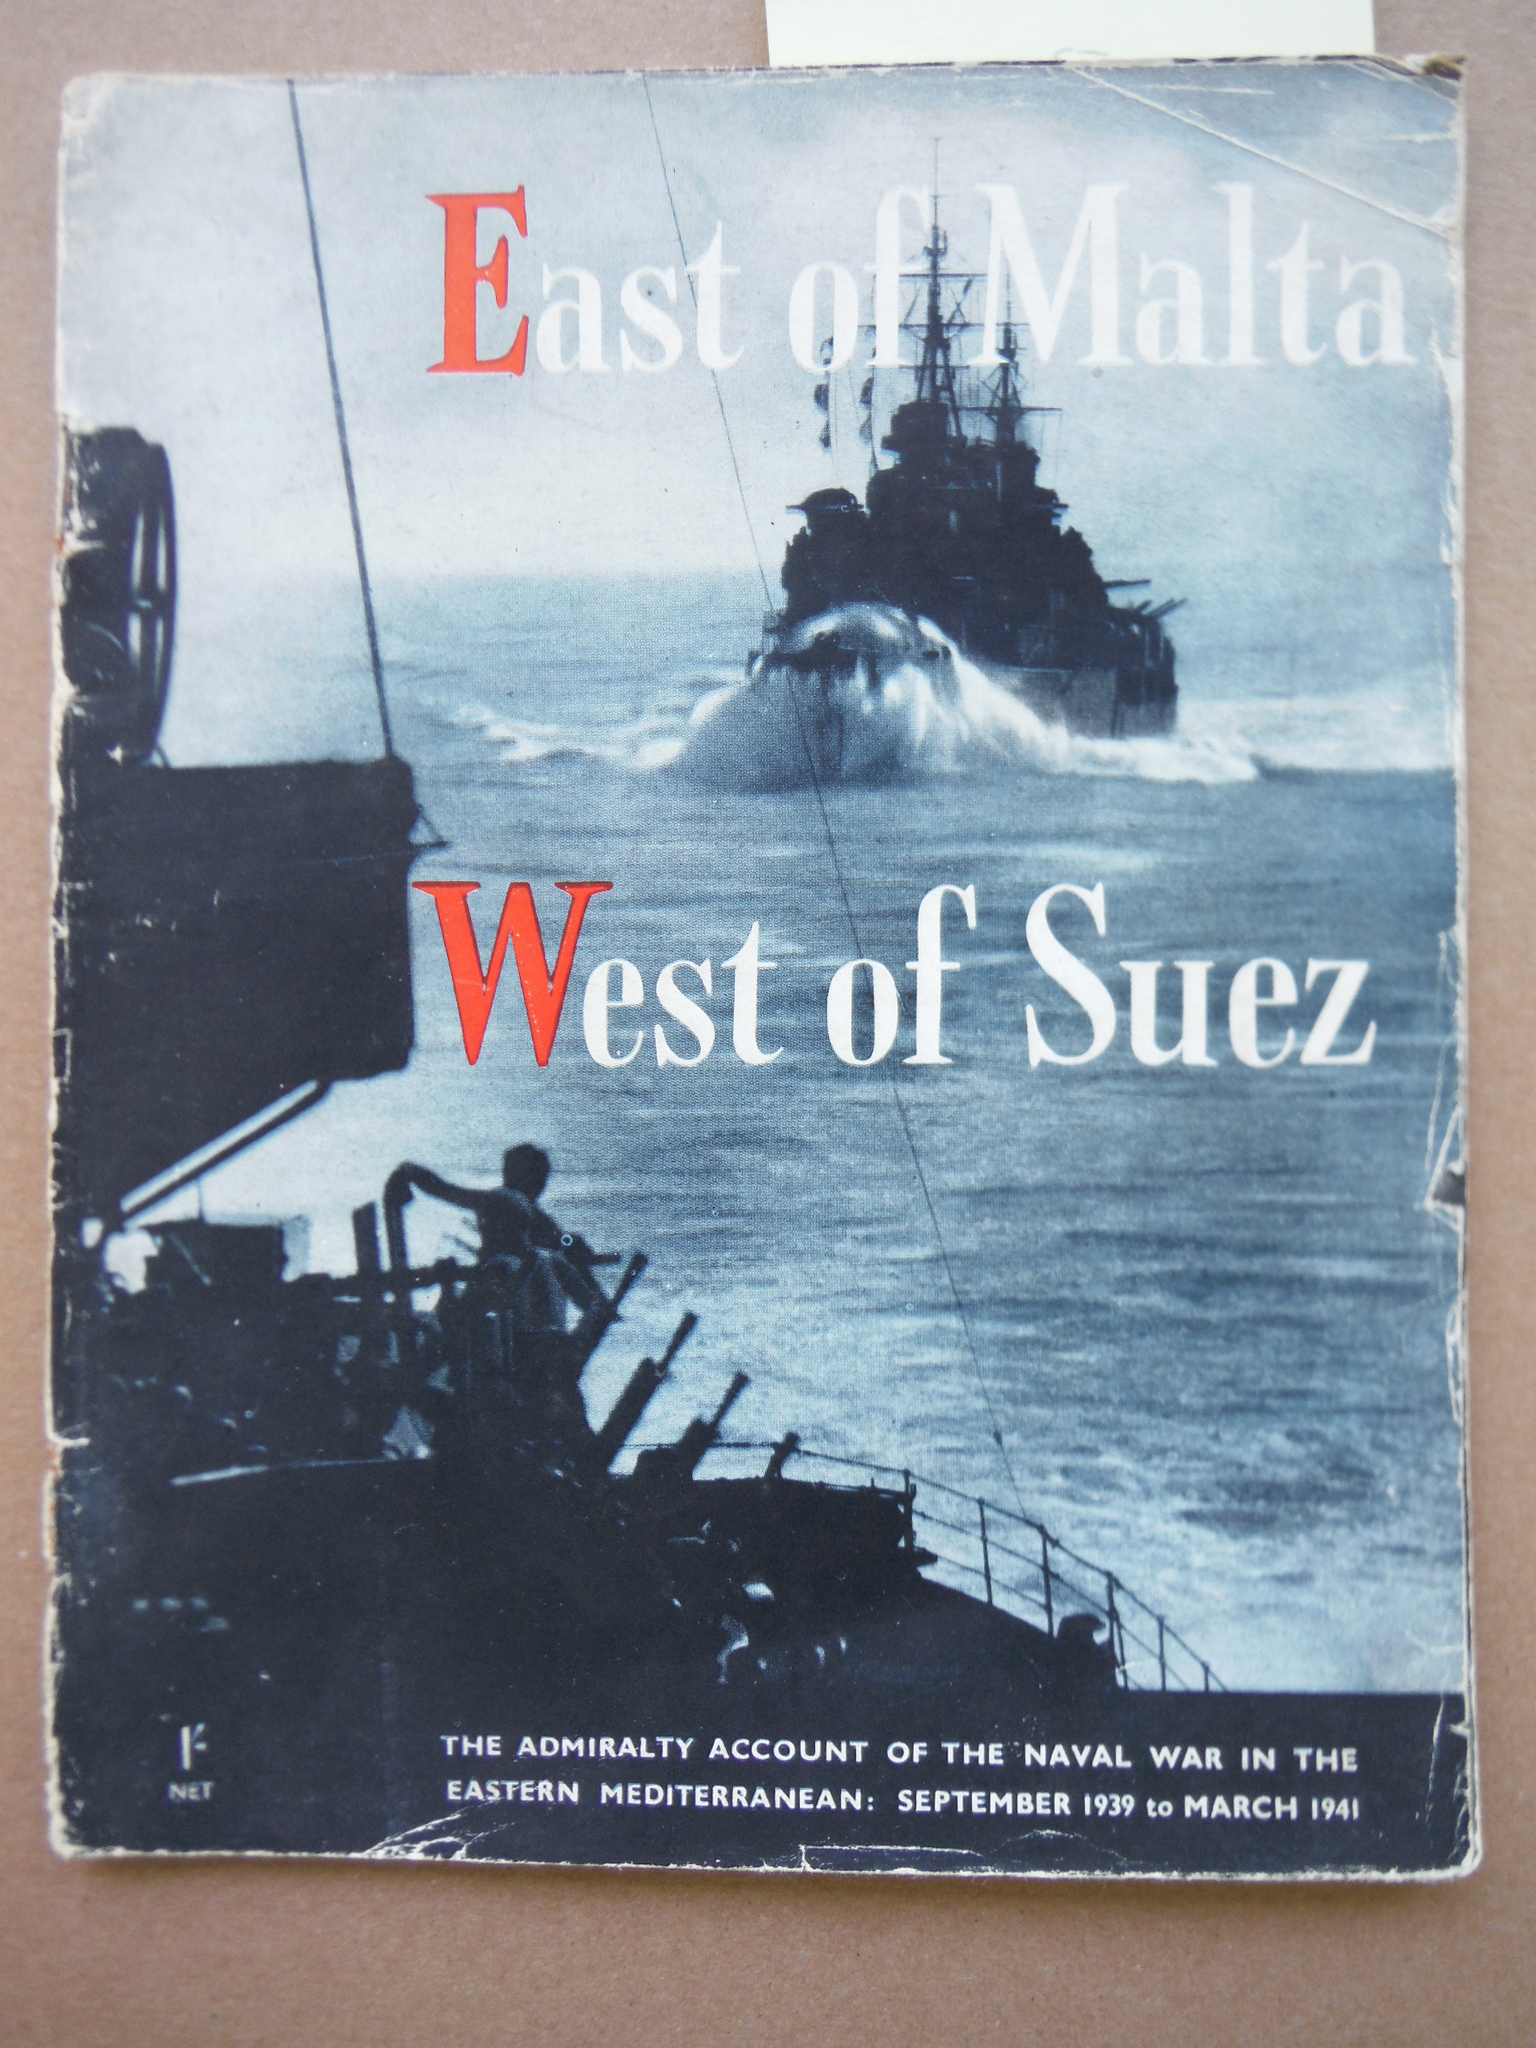 East of Malta, West of Suez: the Admiralty account of the naval war in the Easte